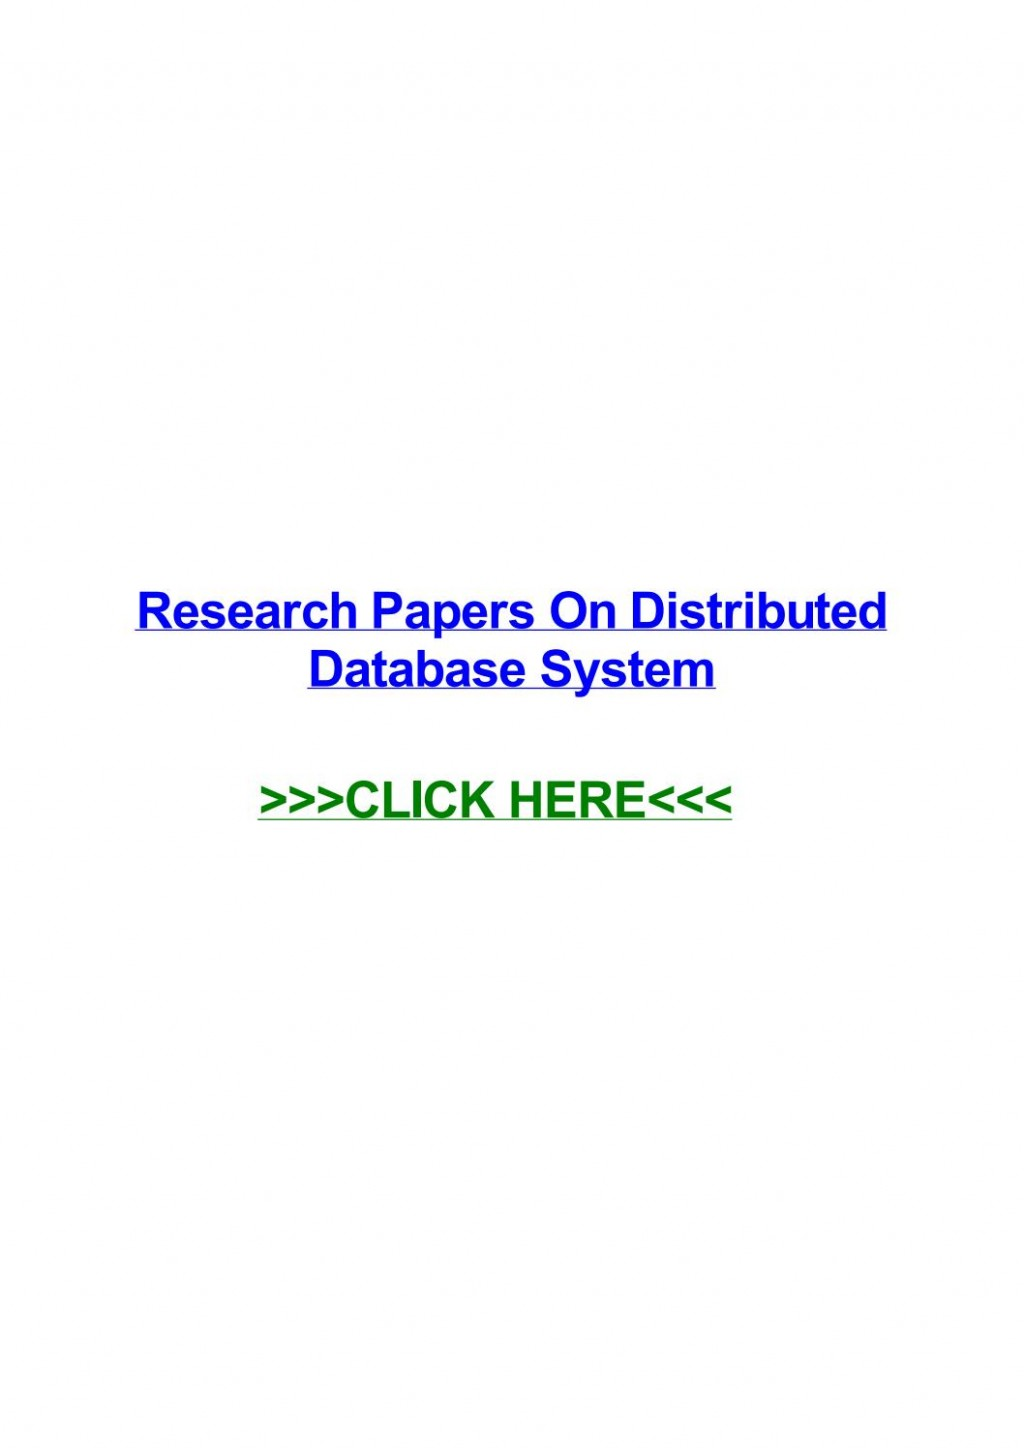 002 Distributed Database Researchs Page 1 Unusual Research Papers Pdf Large